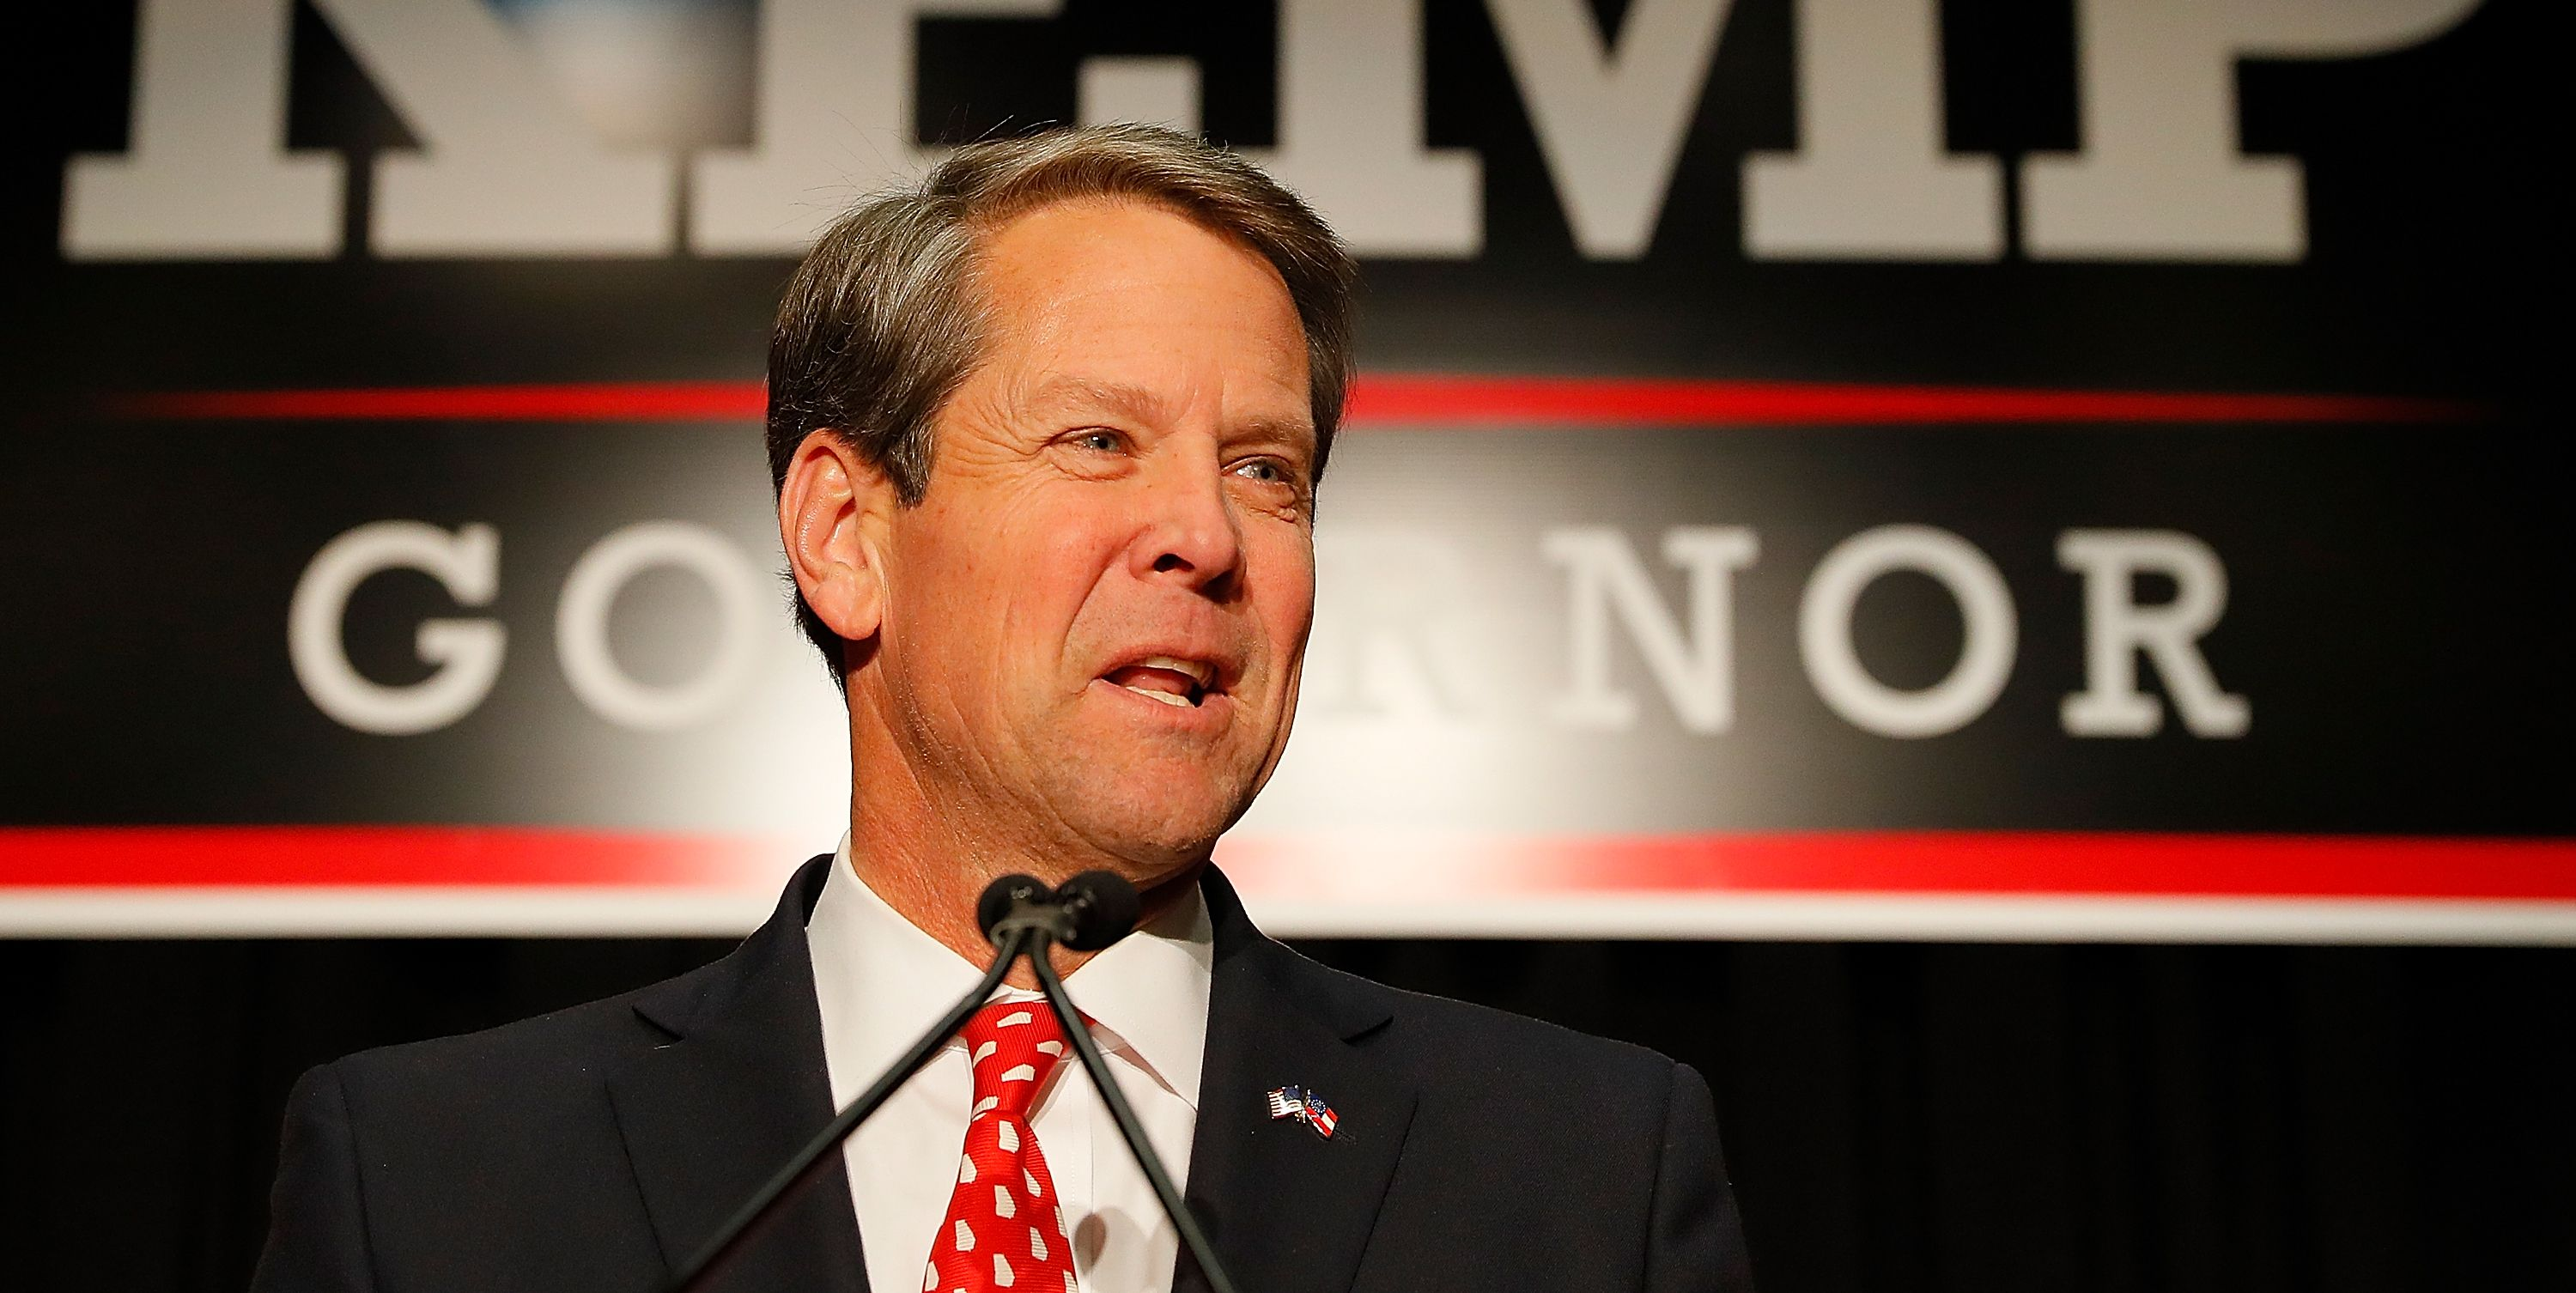 Brian Kemp's Credibility Is Shredded Before He Even Takes Office